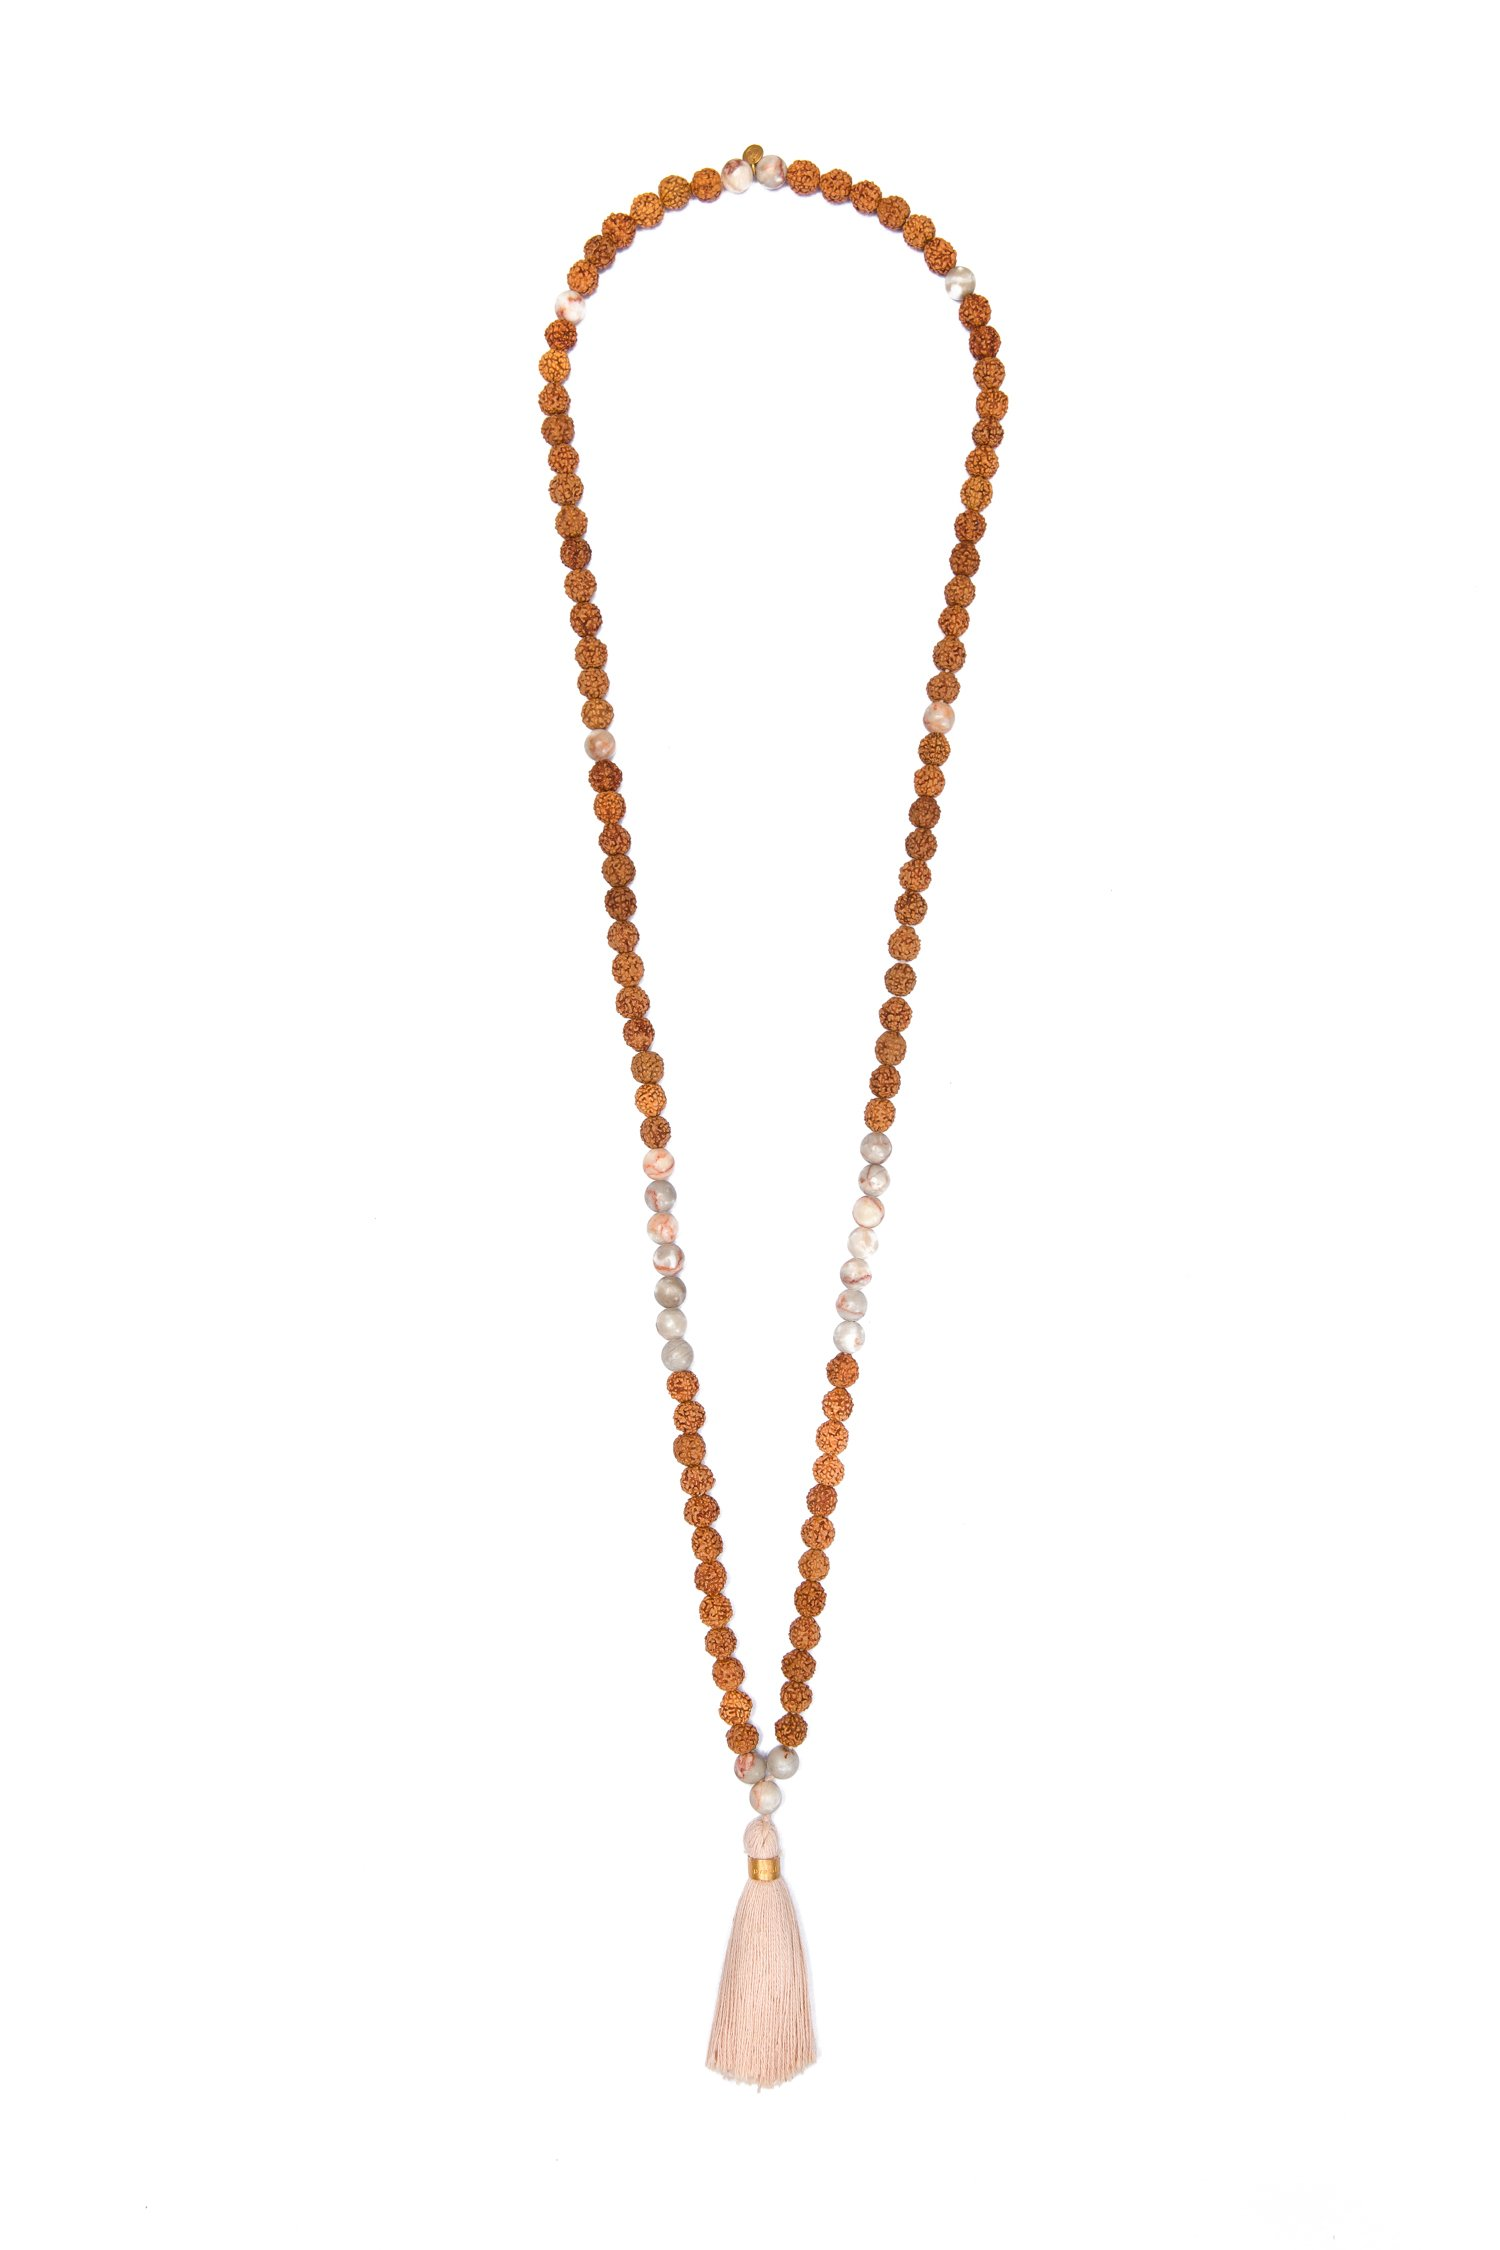 The Path of the Heart Mala